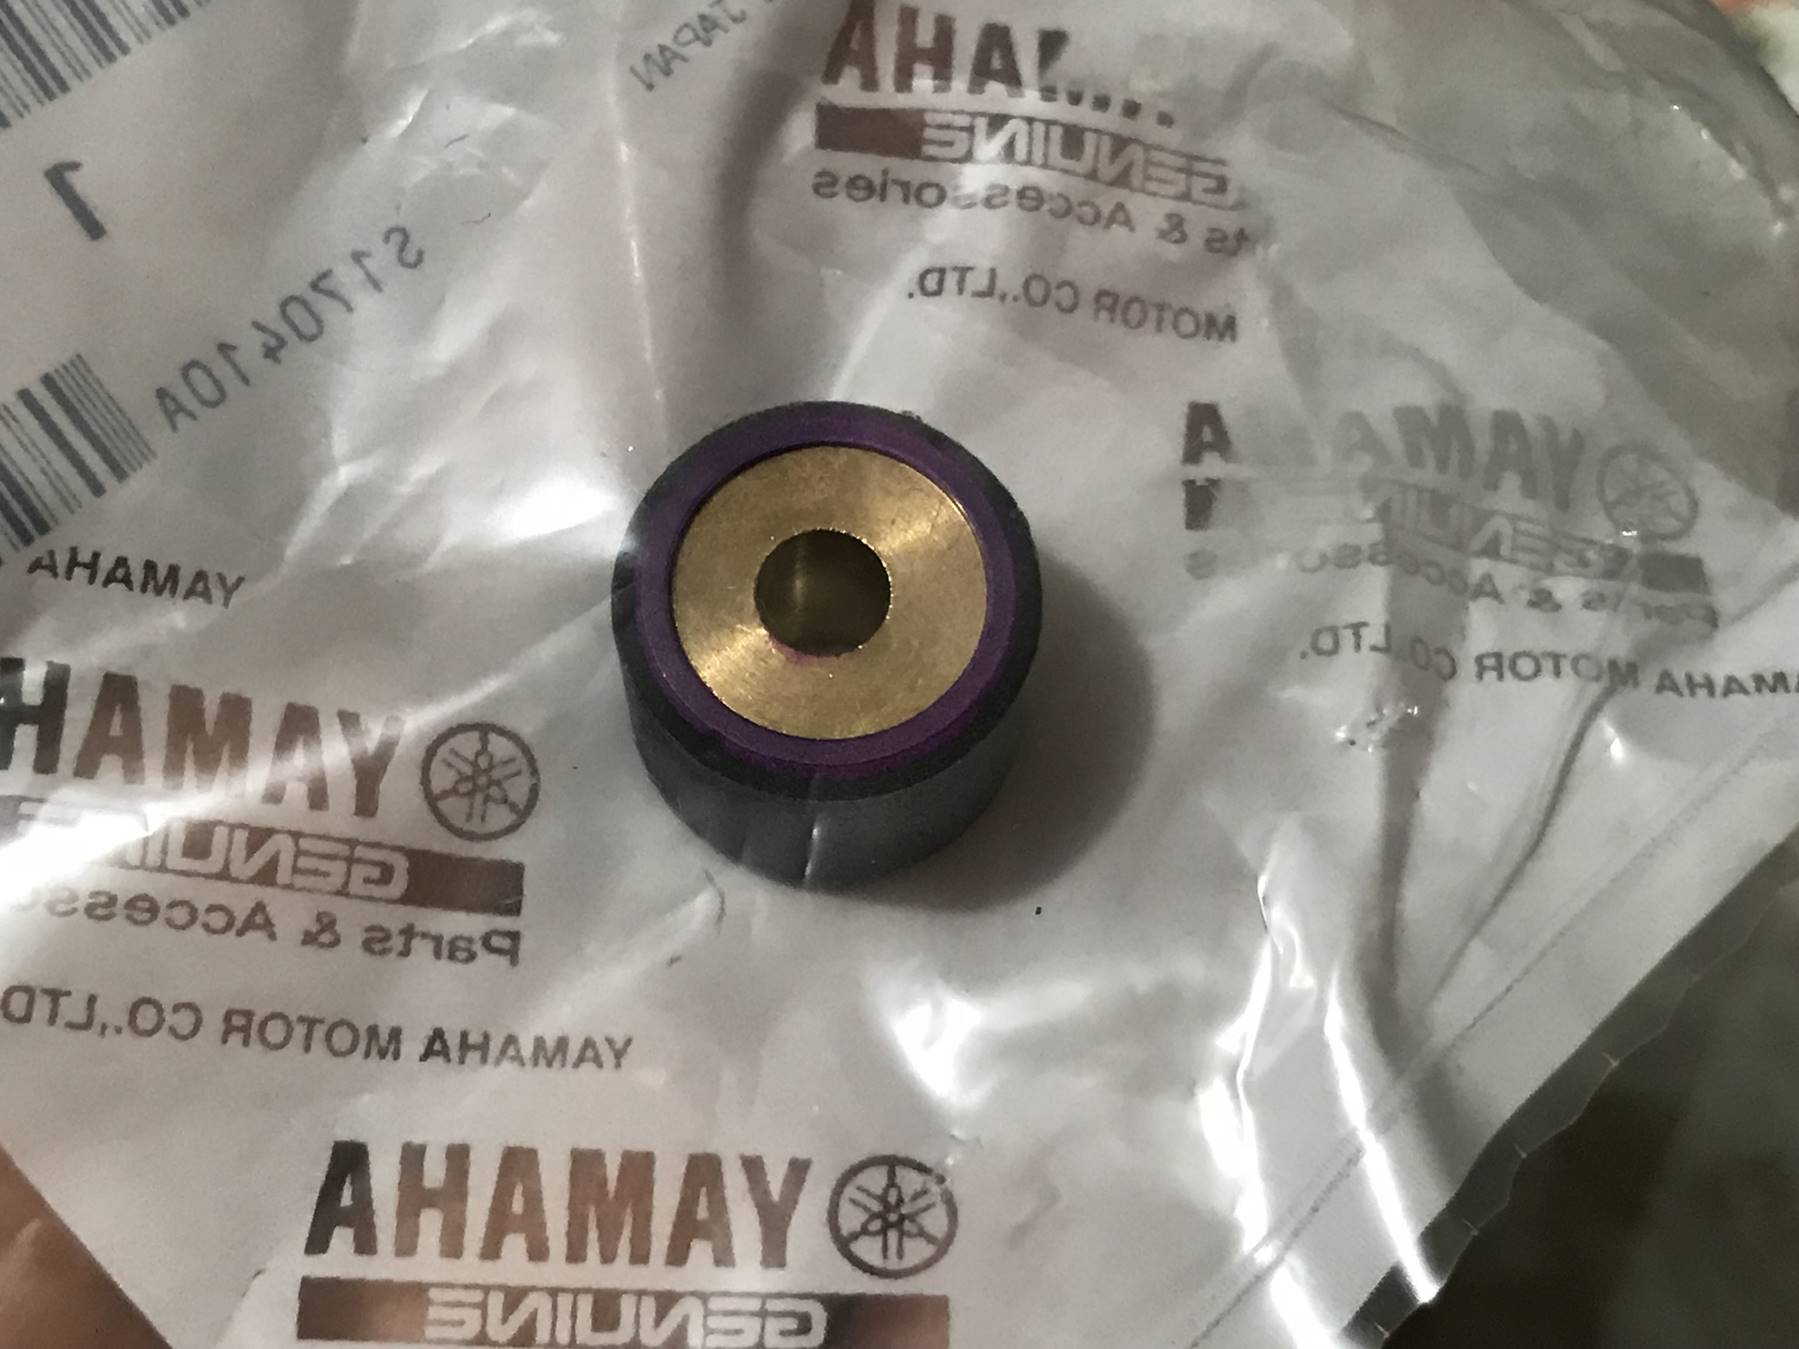 Yamaha Genuine Flyball for Mio sporty,amore,soul 115 carb